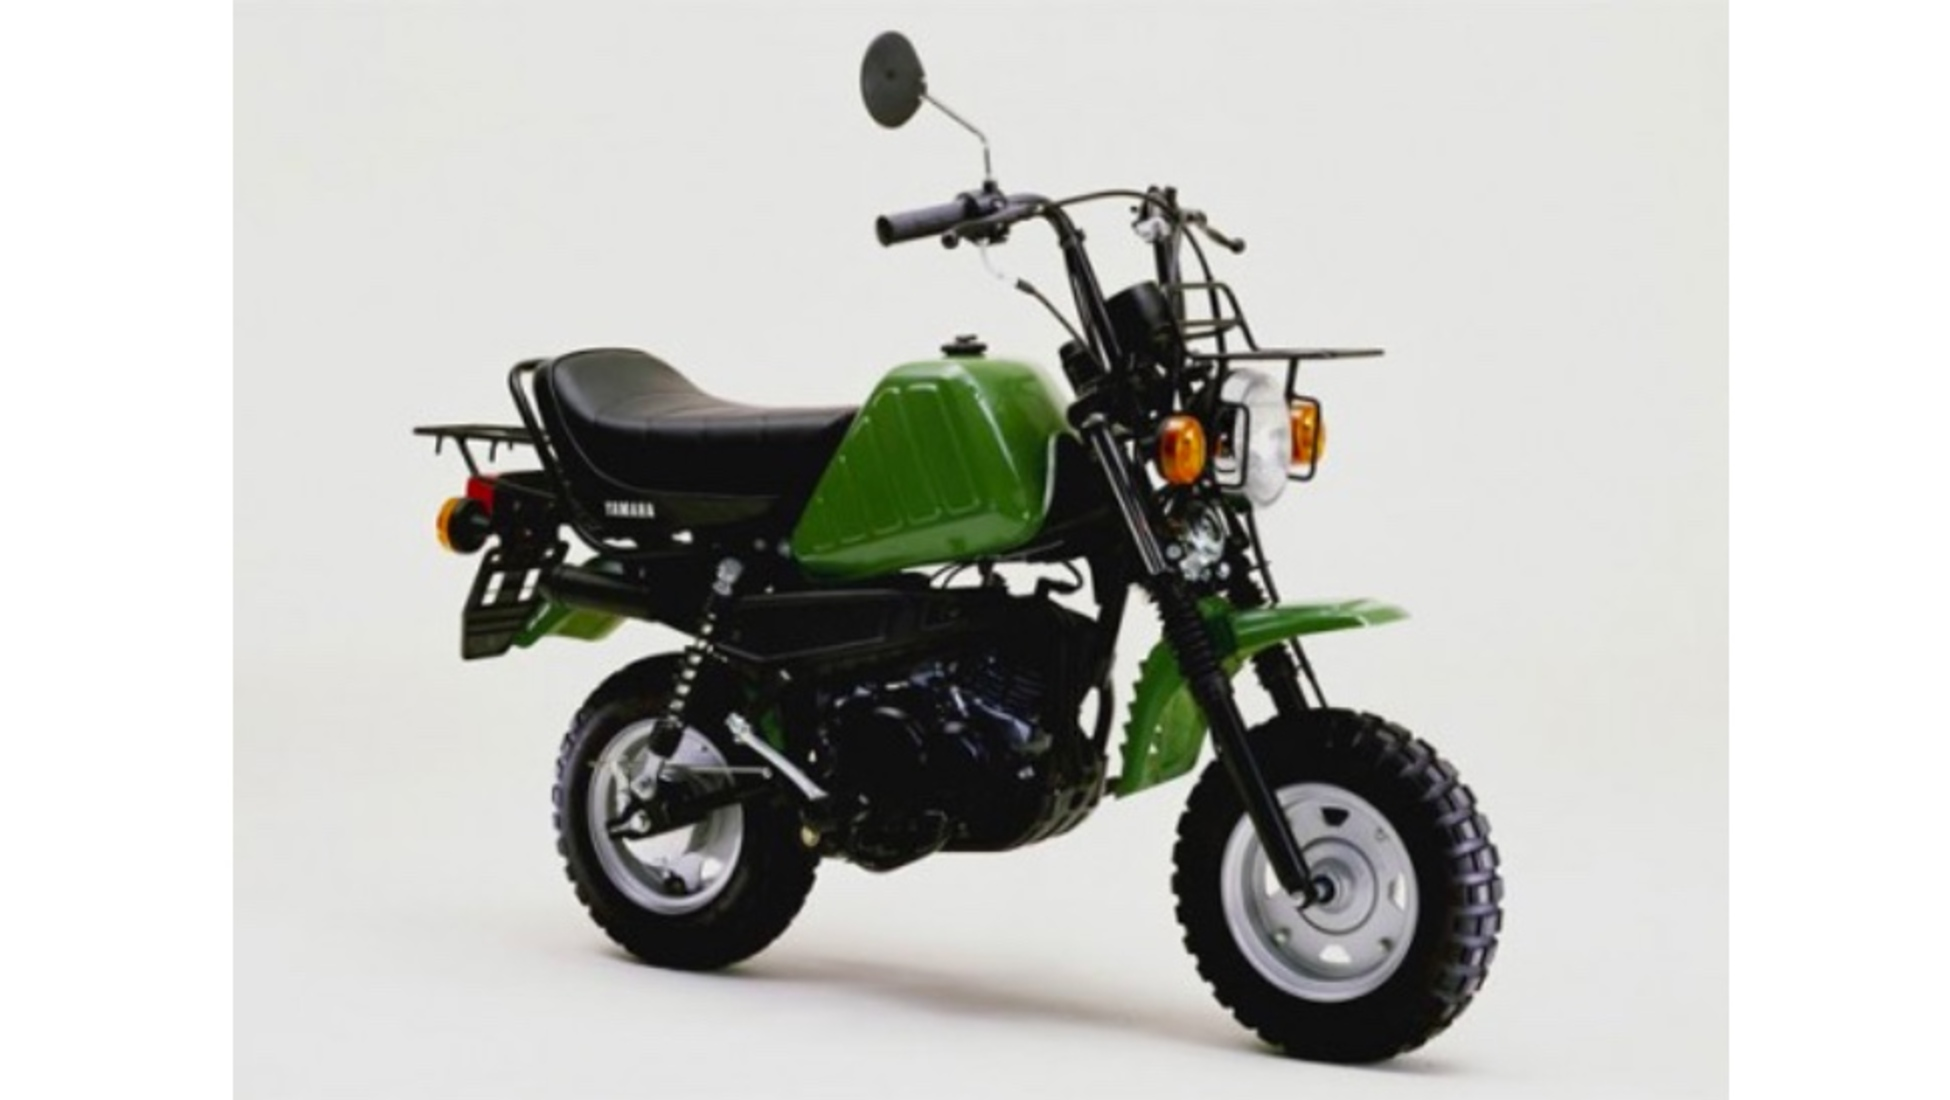 Do You Fancy a Monkey Bike? These Are 5 of the Smallest Mini Bikes ...